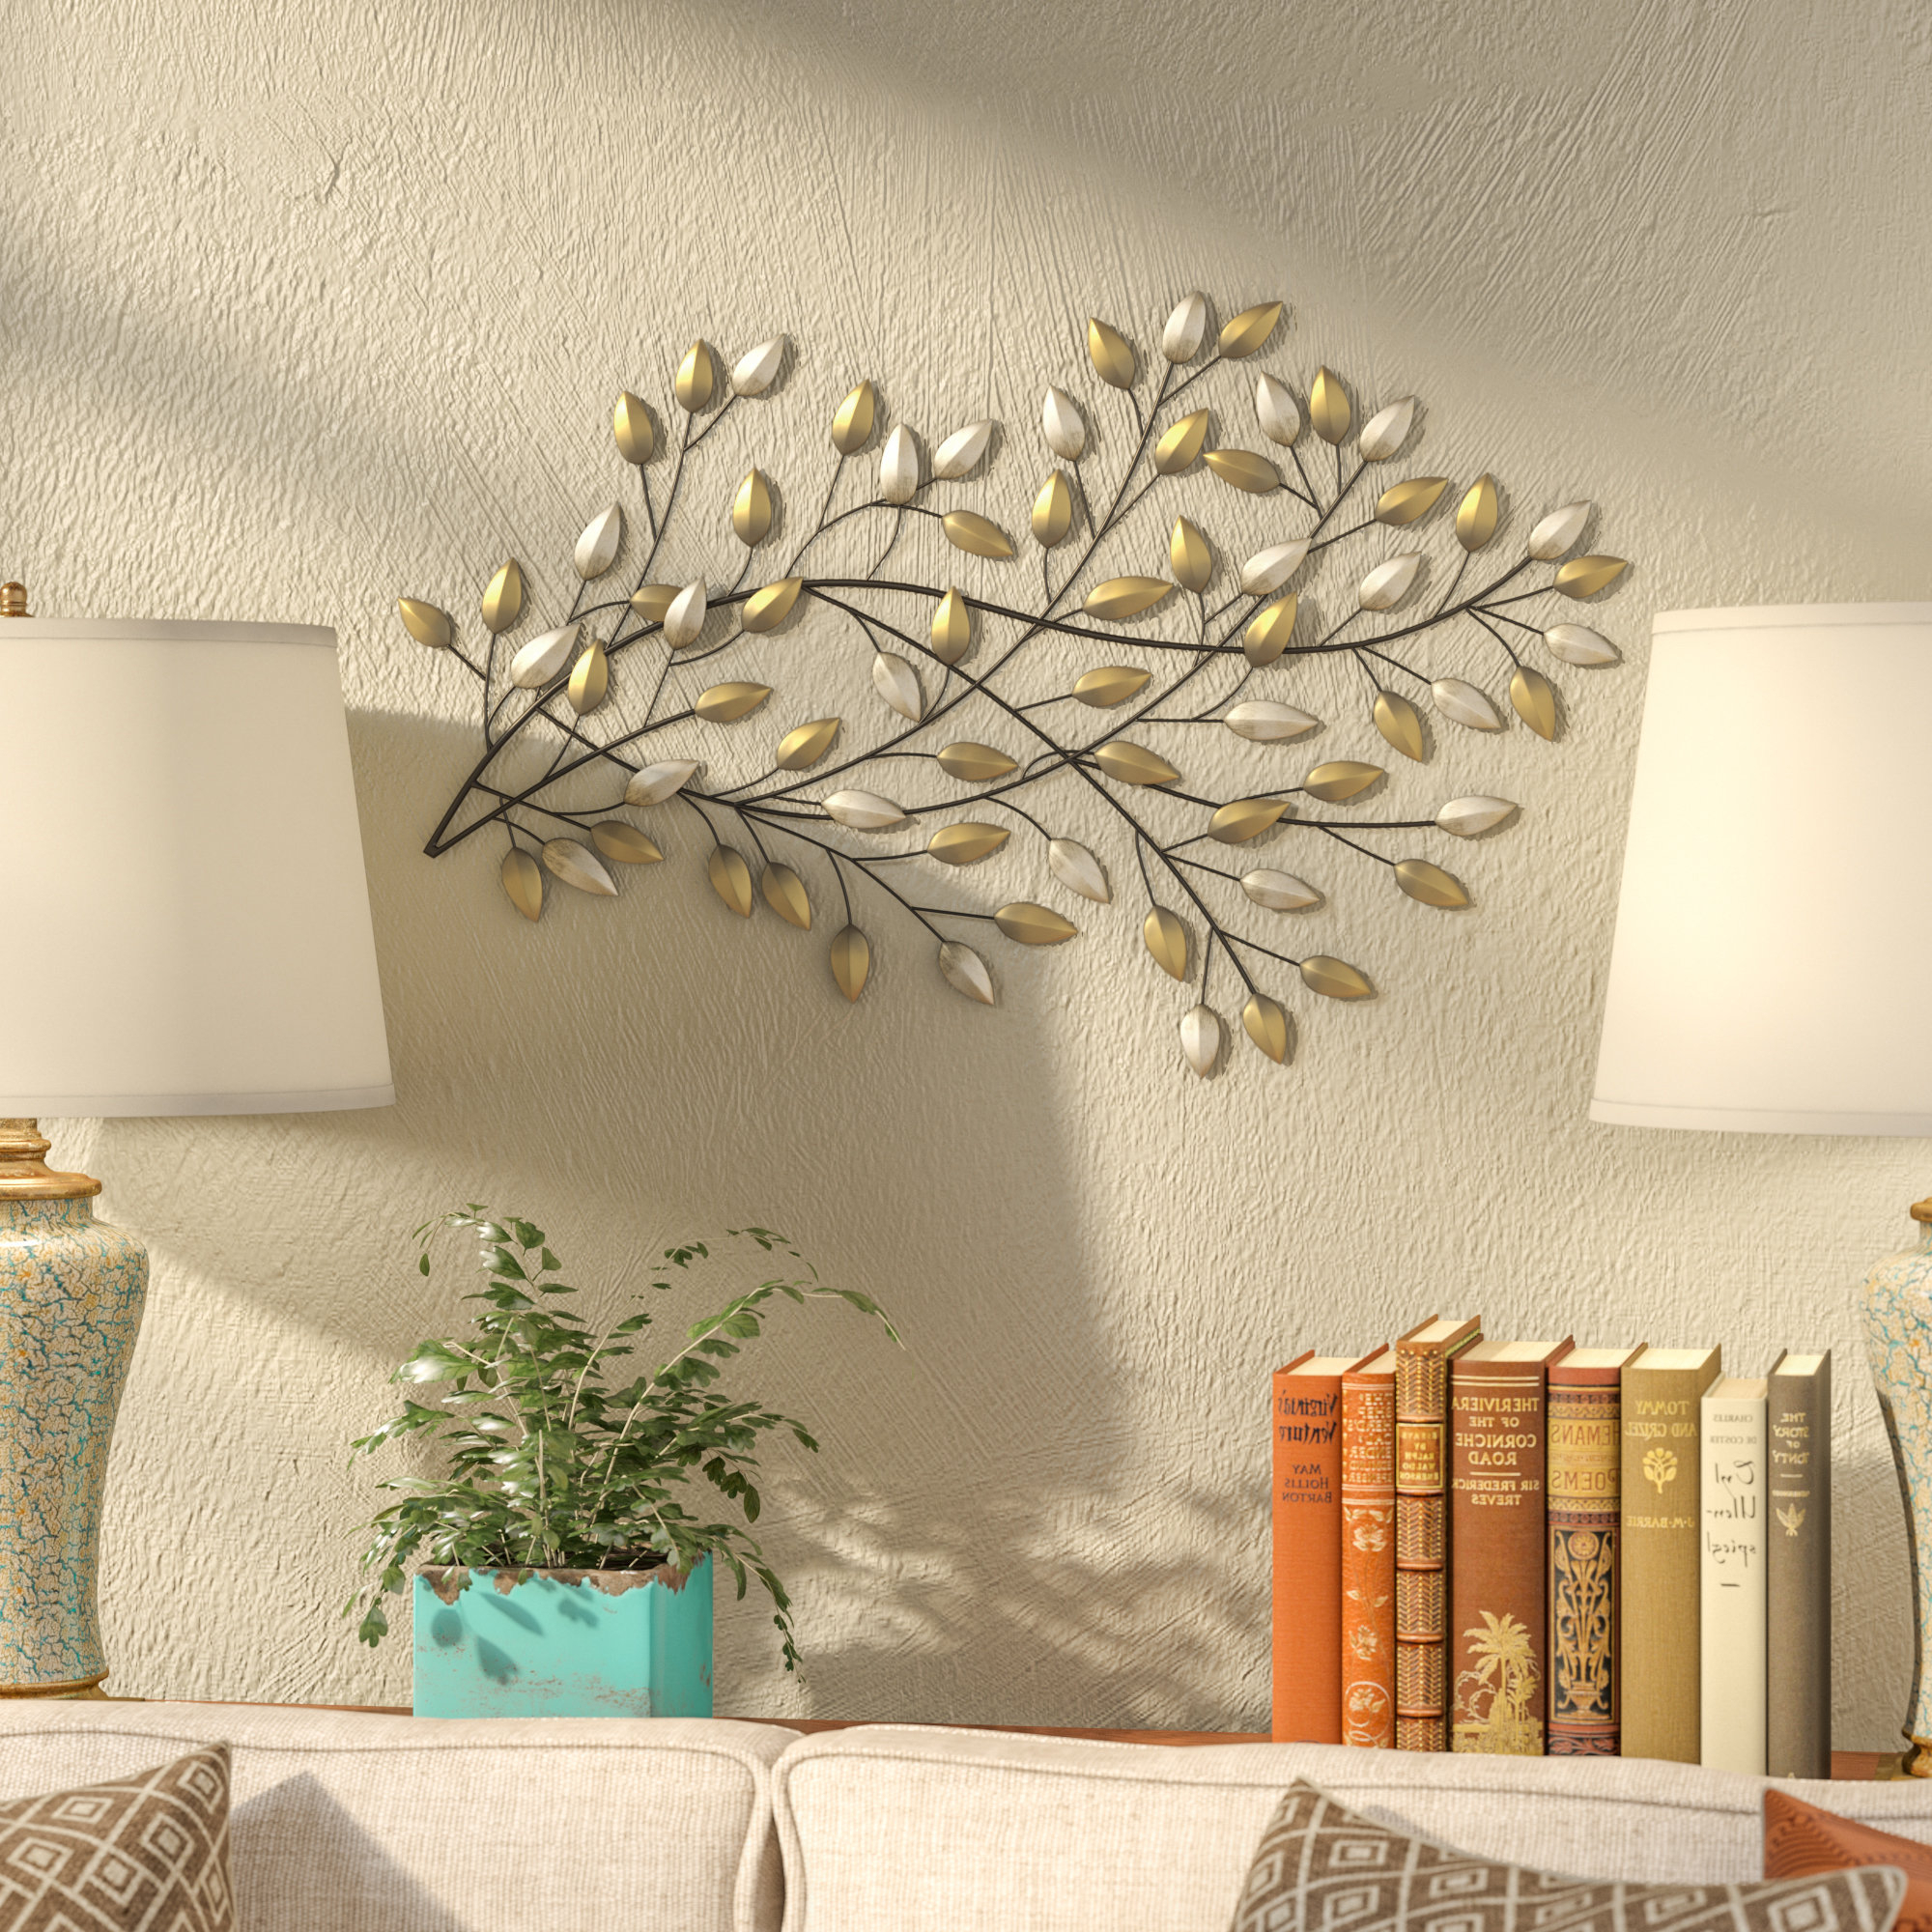 2020 Blowing Leaves Wall Decor Throughout Fleur De Lis Living Blowing Leaves Wall Décor & Reviews (View 1 of 20)